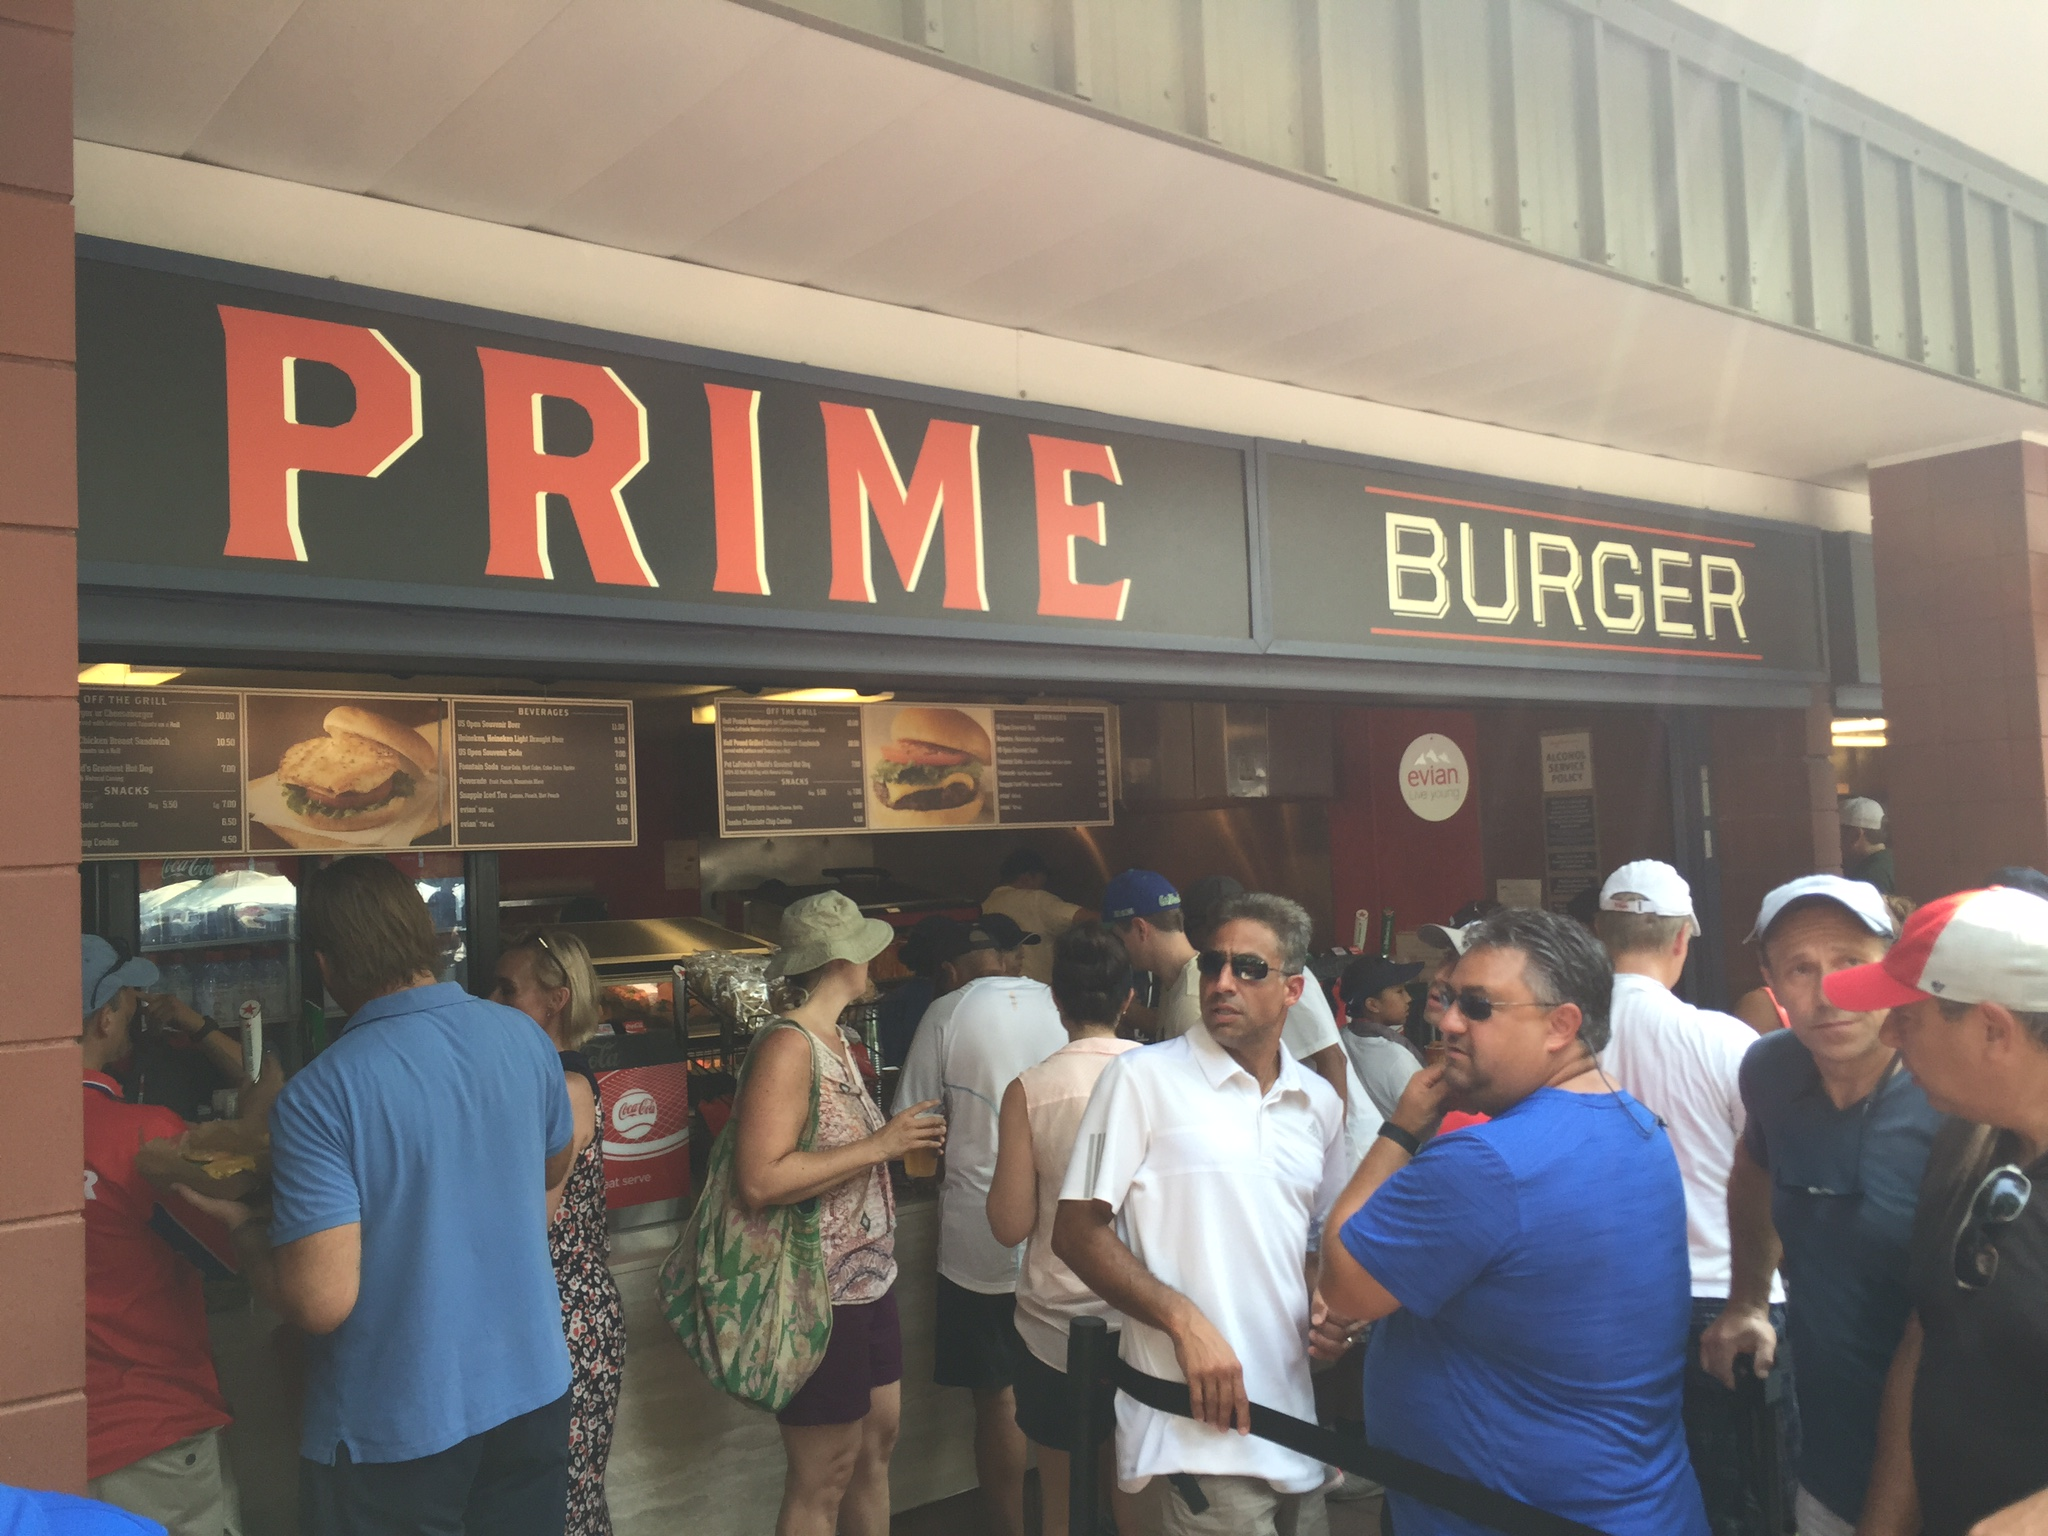 New York has no shortage of burger options, so dive in with Prim Burger while taking in the action.